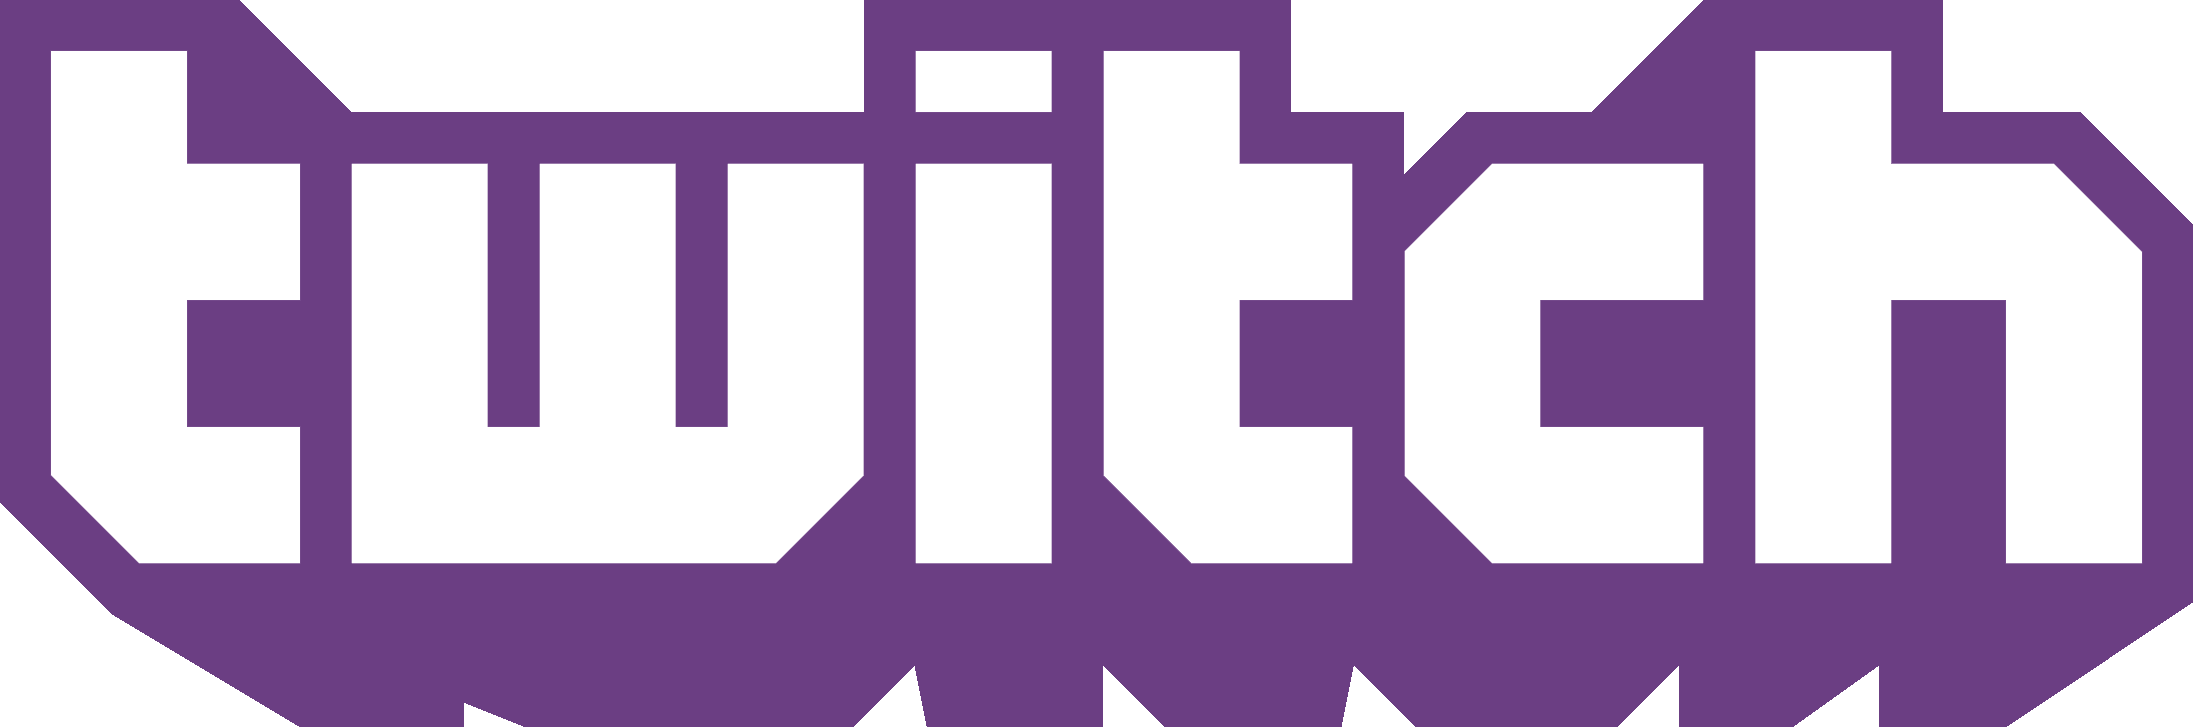 YouTube (Google?) reportedly wants to buy Twitch for $1 billion